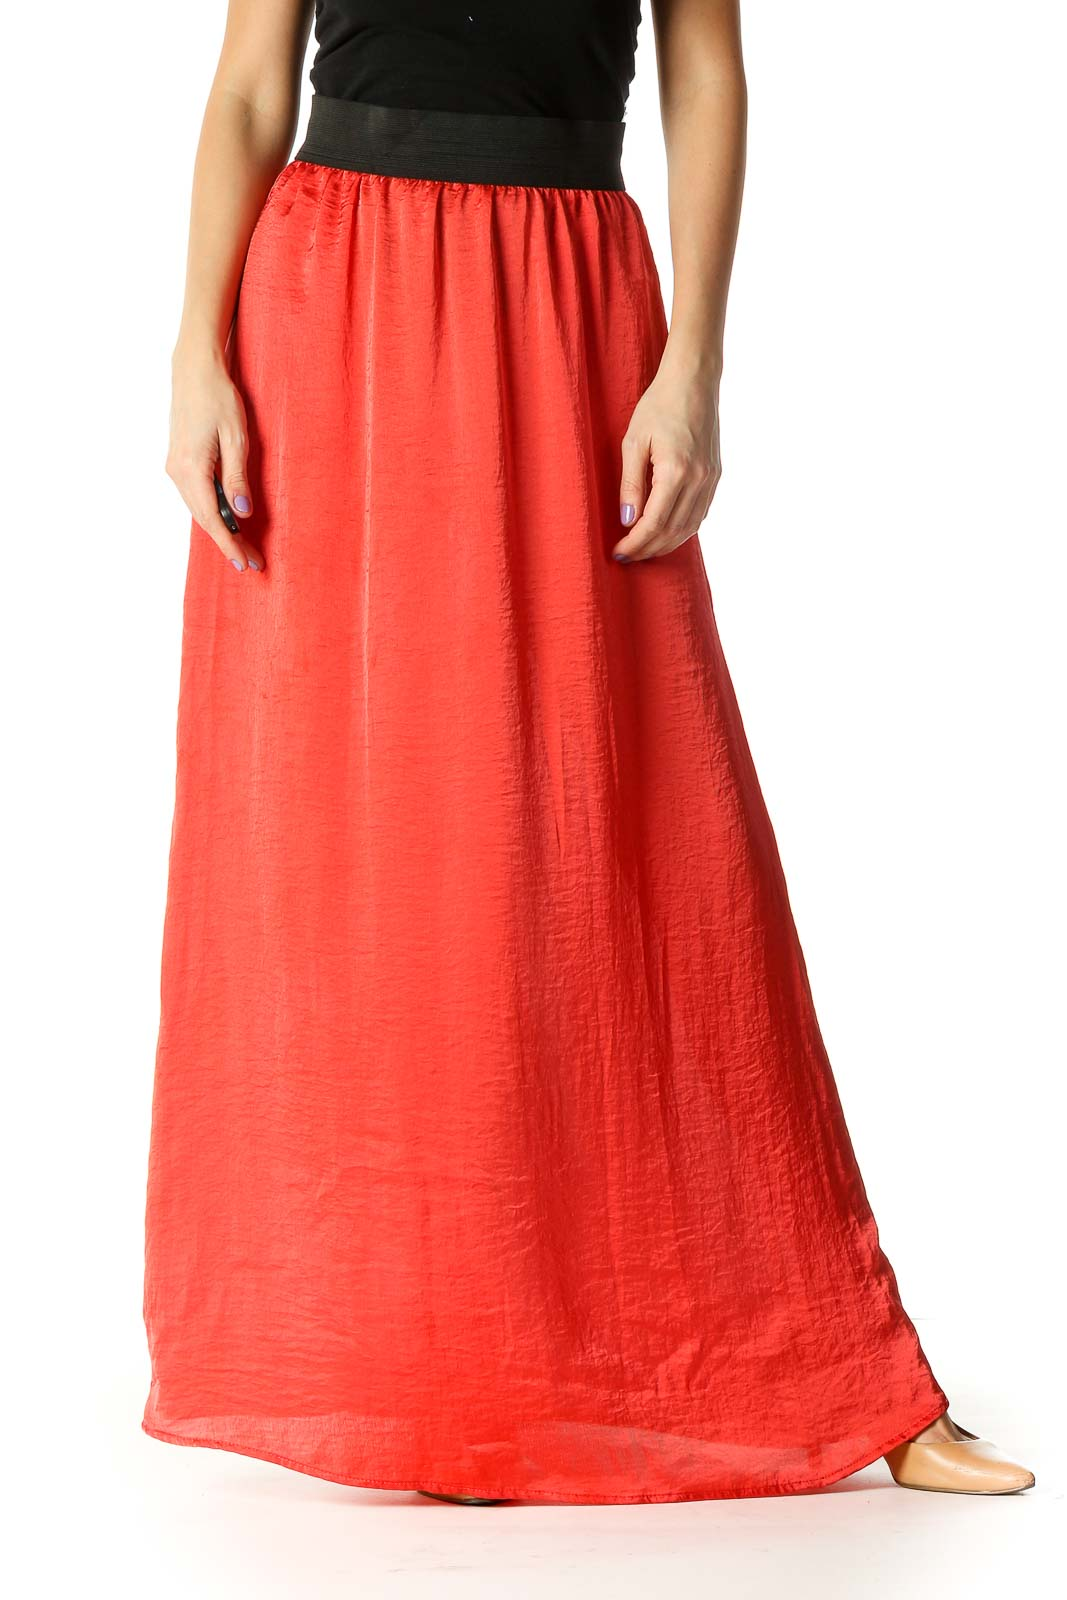 Orange Solid Casual Pleated Skirt Front